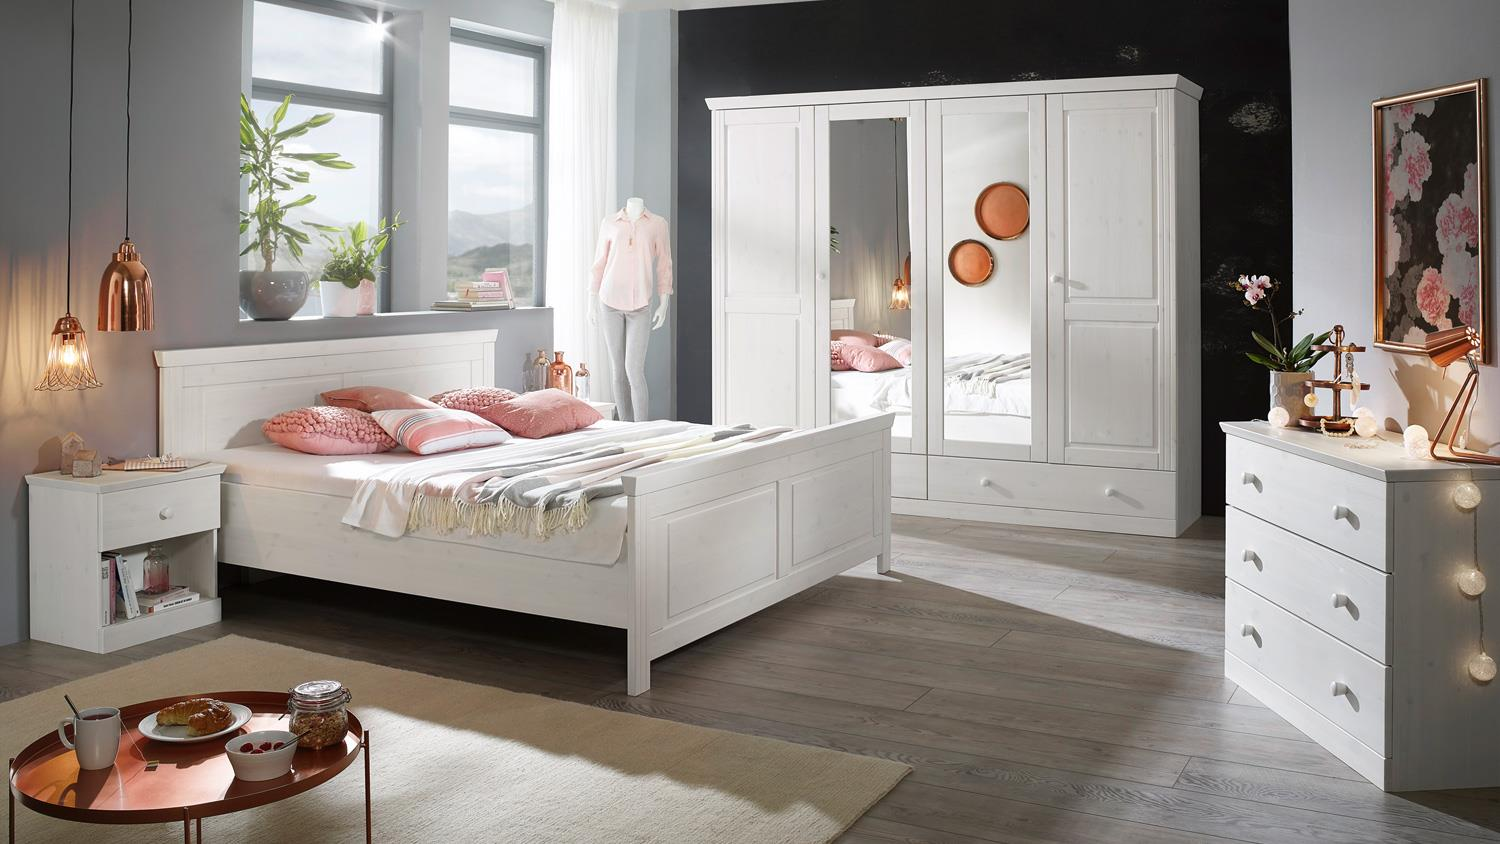 bettgestell genia kiefer massiv wei gewachst 180x200 cm landhausstil. Black Bedroom Furniture Sets. Home Design Ideas